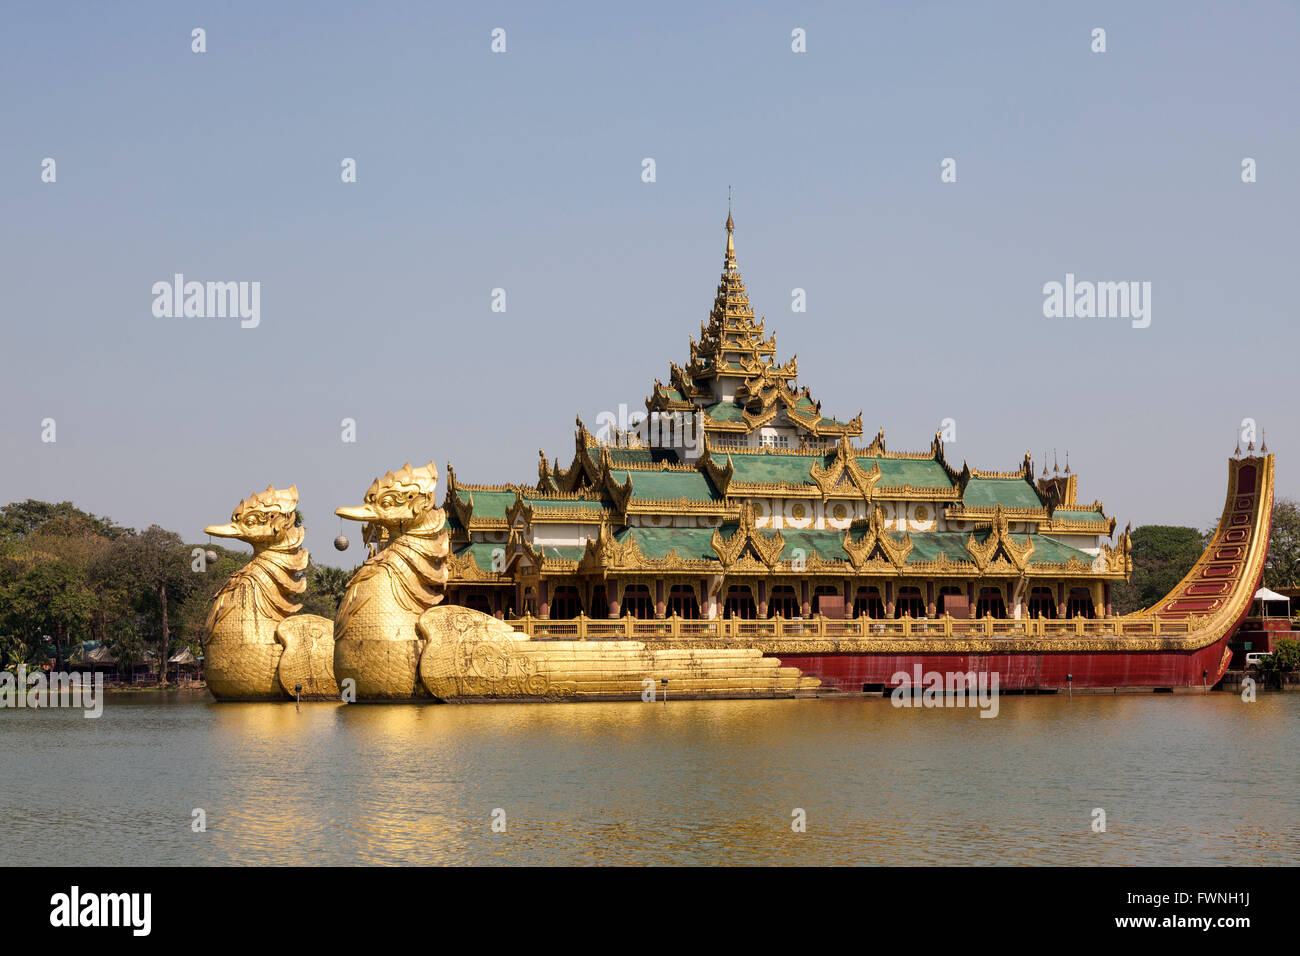 On the Eastern shore of the Kandawgyi Lake (Yangon - Myanmar), the crazy Karaweik Hall is the copy of the Royal Stock Photo